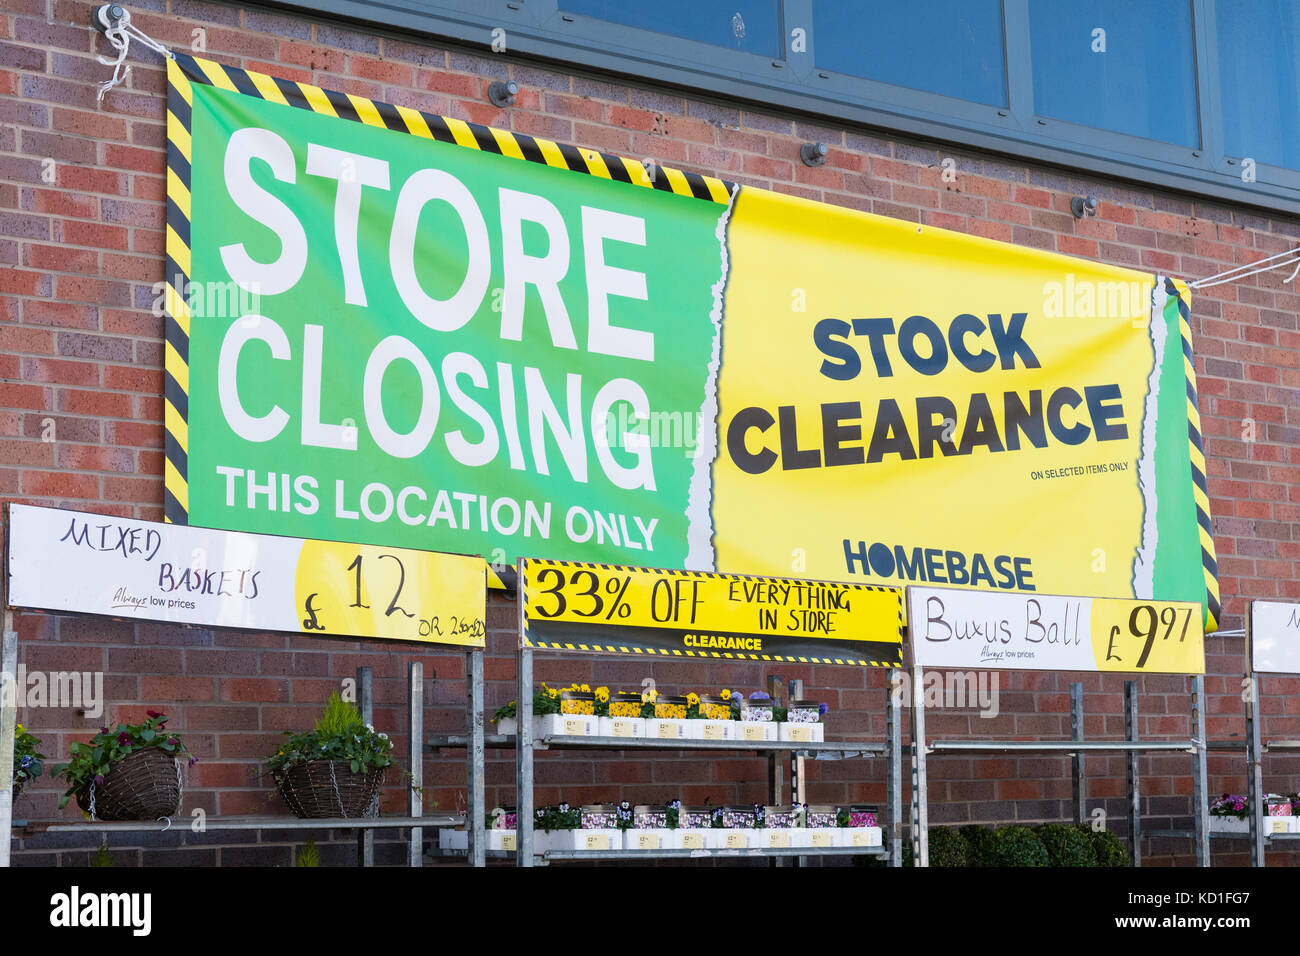 Shop clearance stock